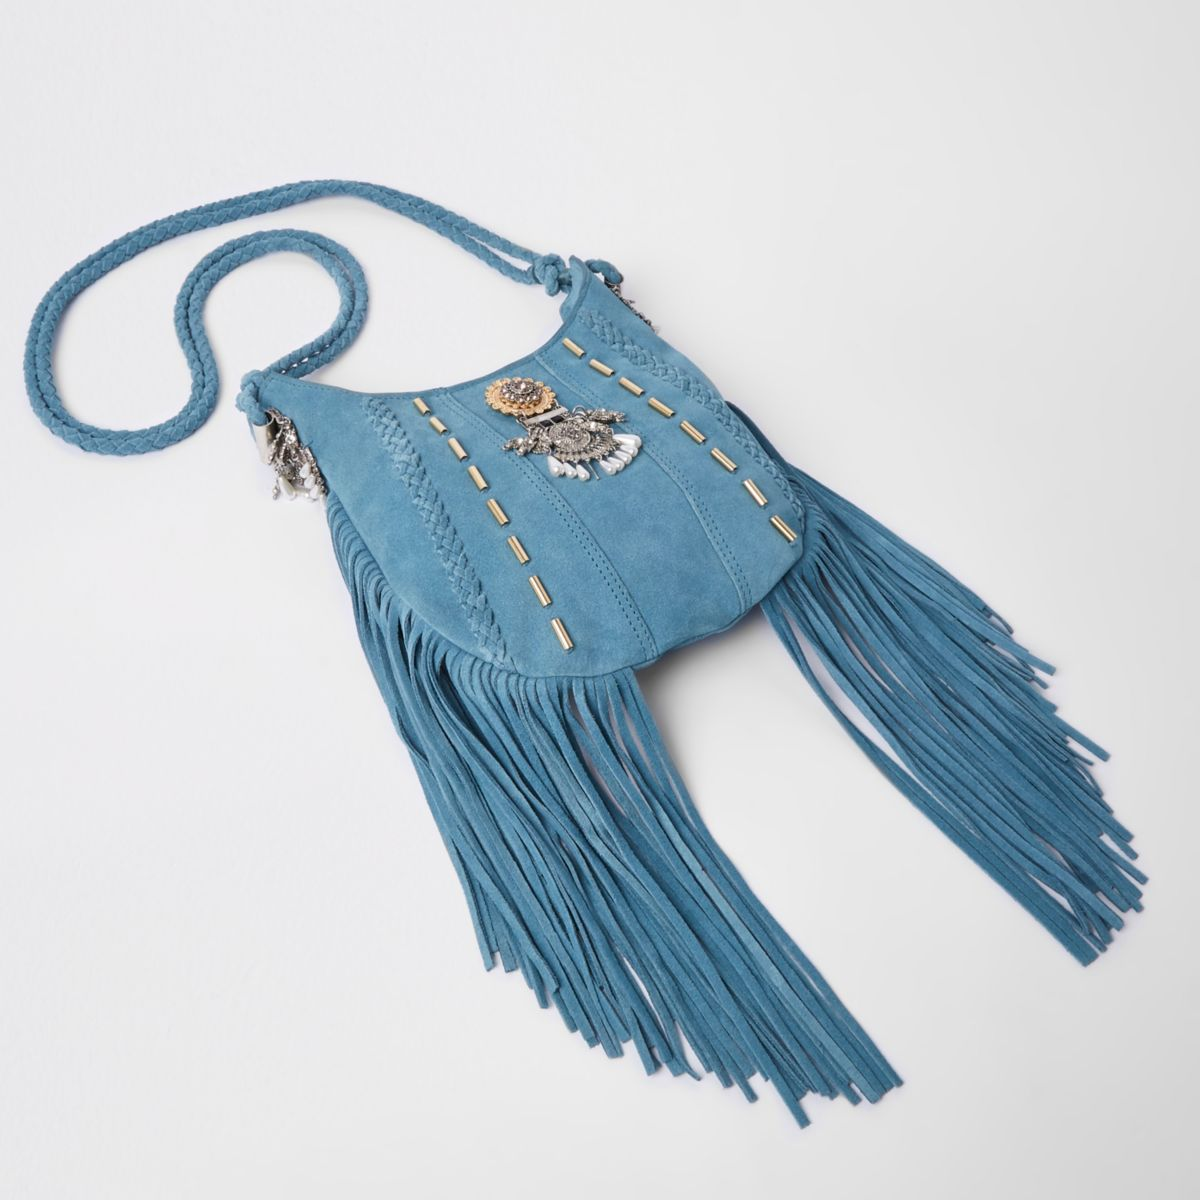 Womens Blue embellished tassel brooch cross body bag River Island 6Kfrnd8X2